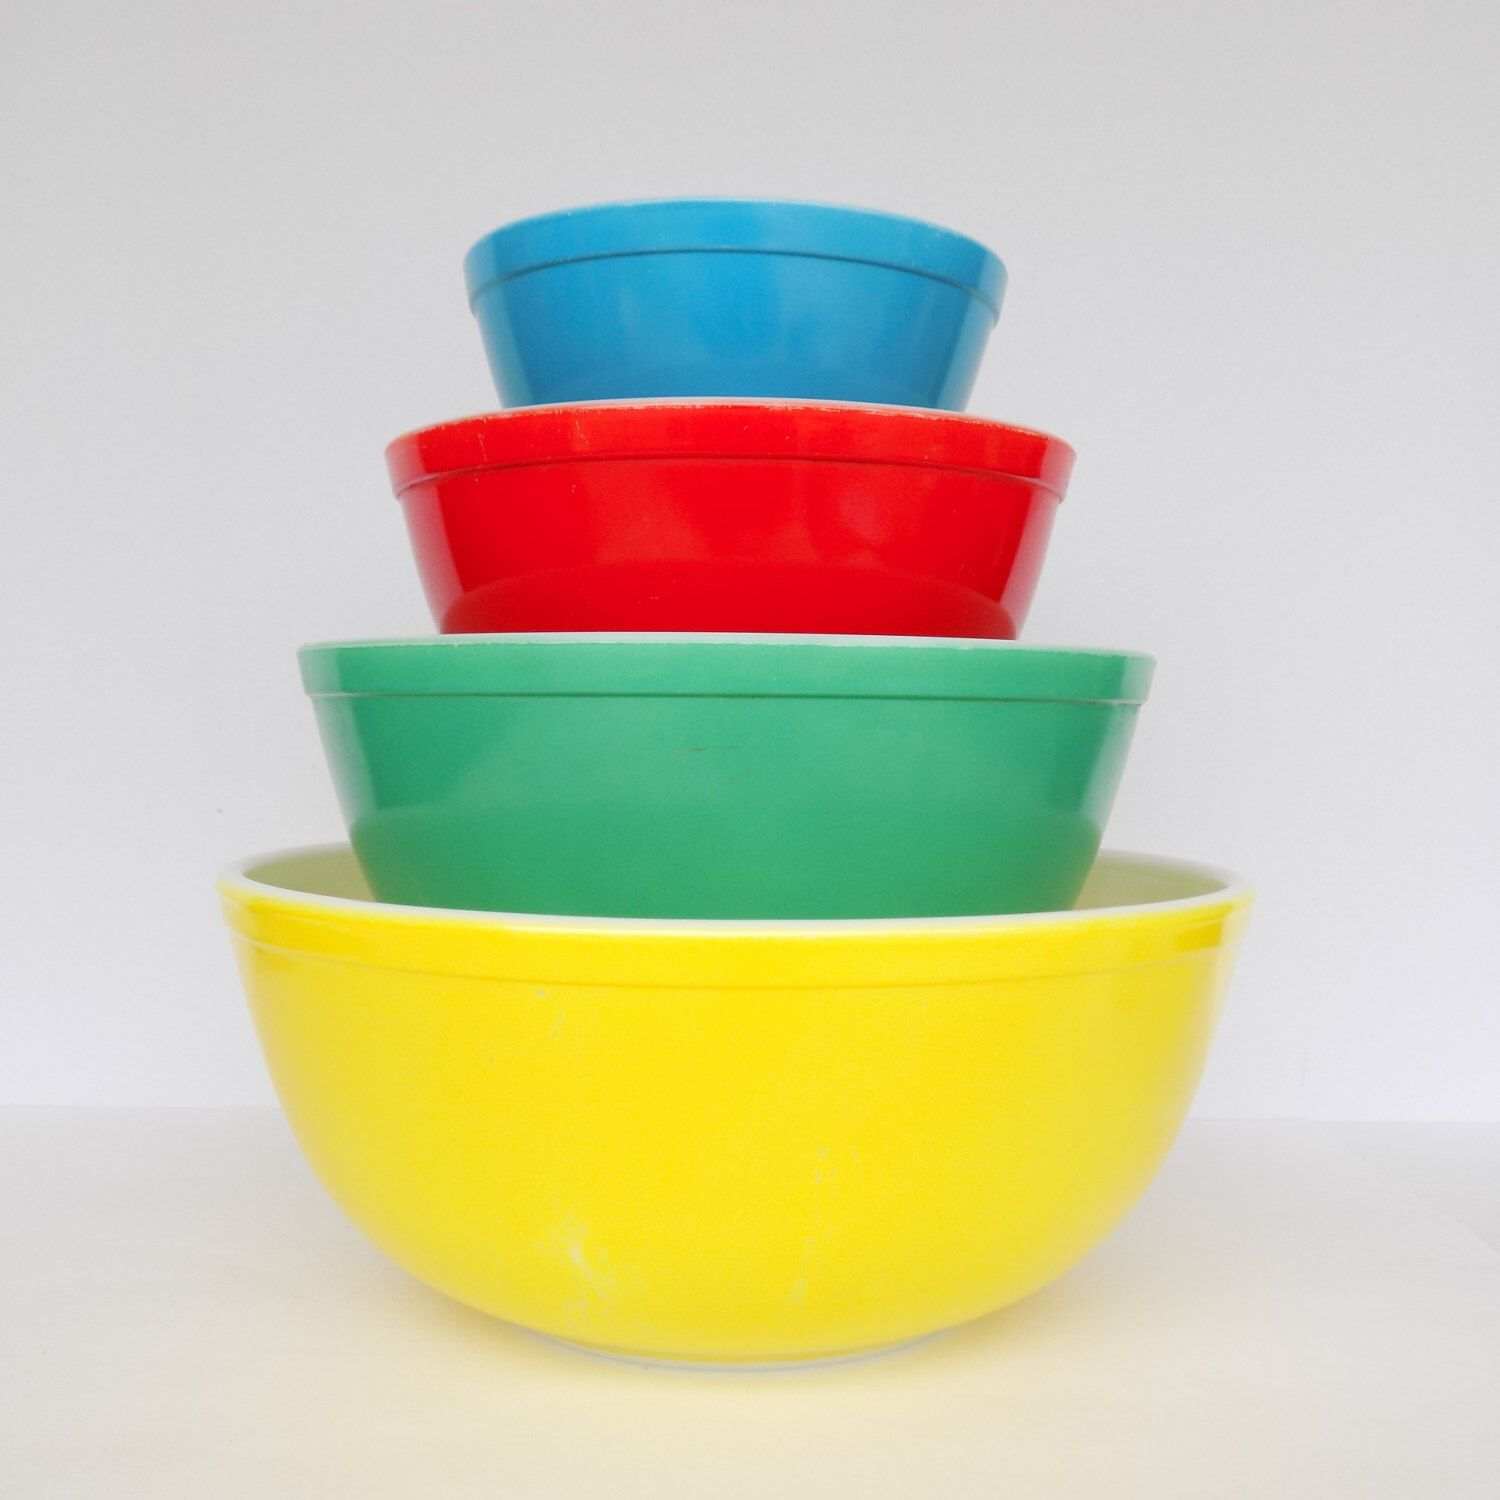 Vintage Pyrex Primary Colors Nesting Bowls Complete Set of 4 by ...